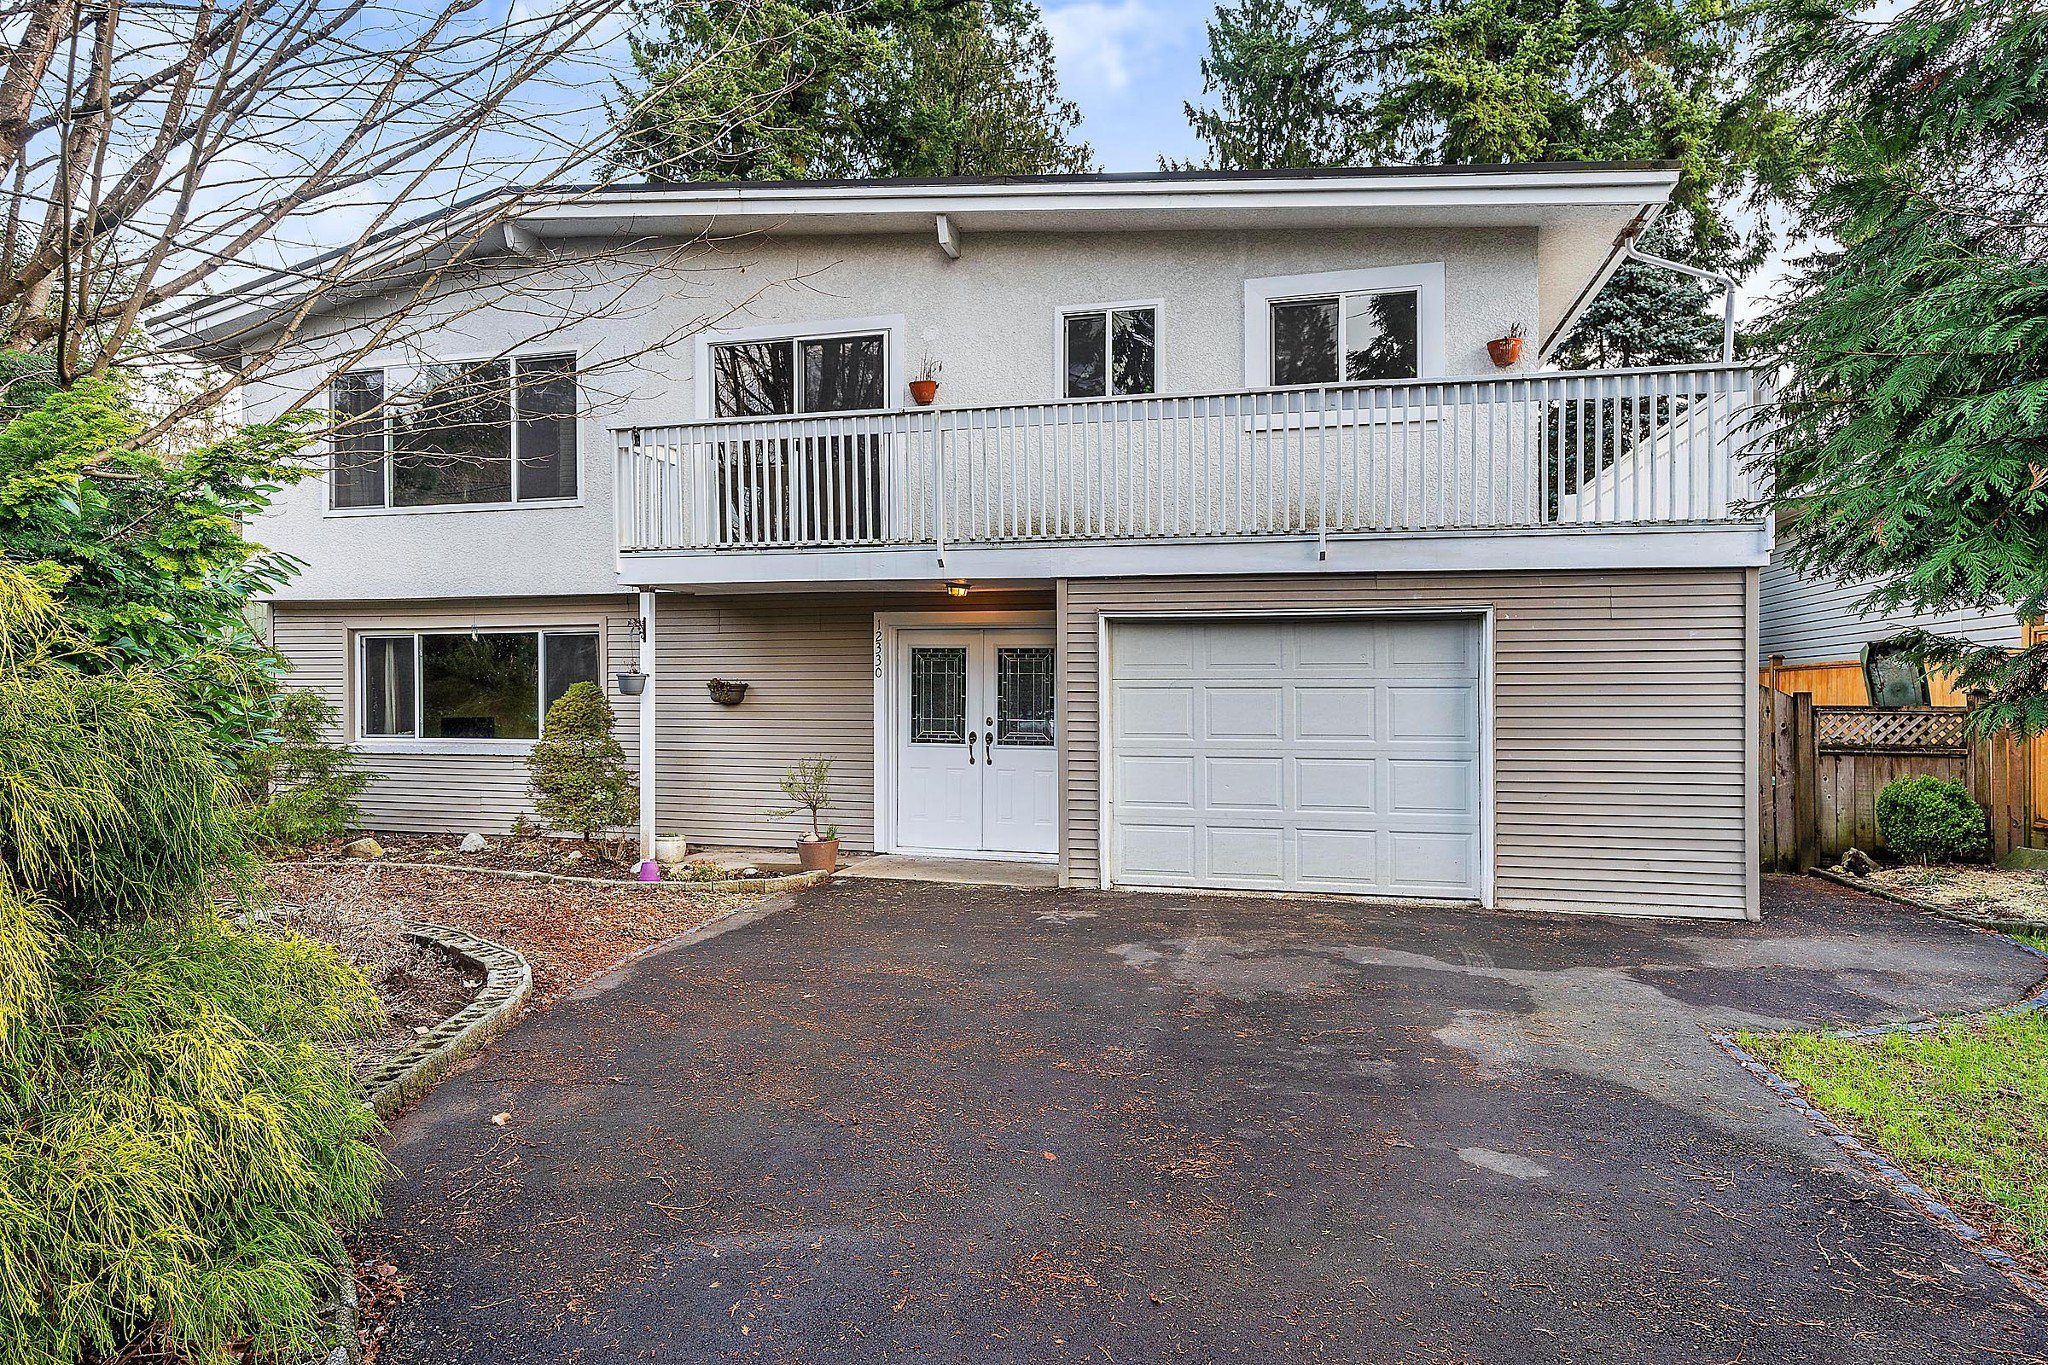 Main Photo: 12330 CARLTON Street in Maple Ridge: West Central House for sale : MLS®# R2428981